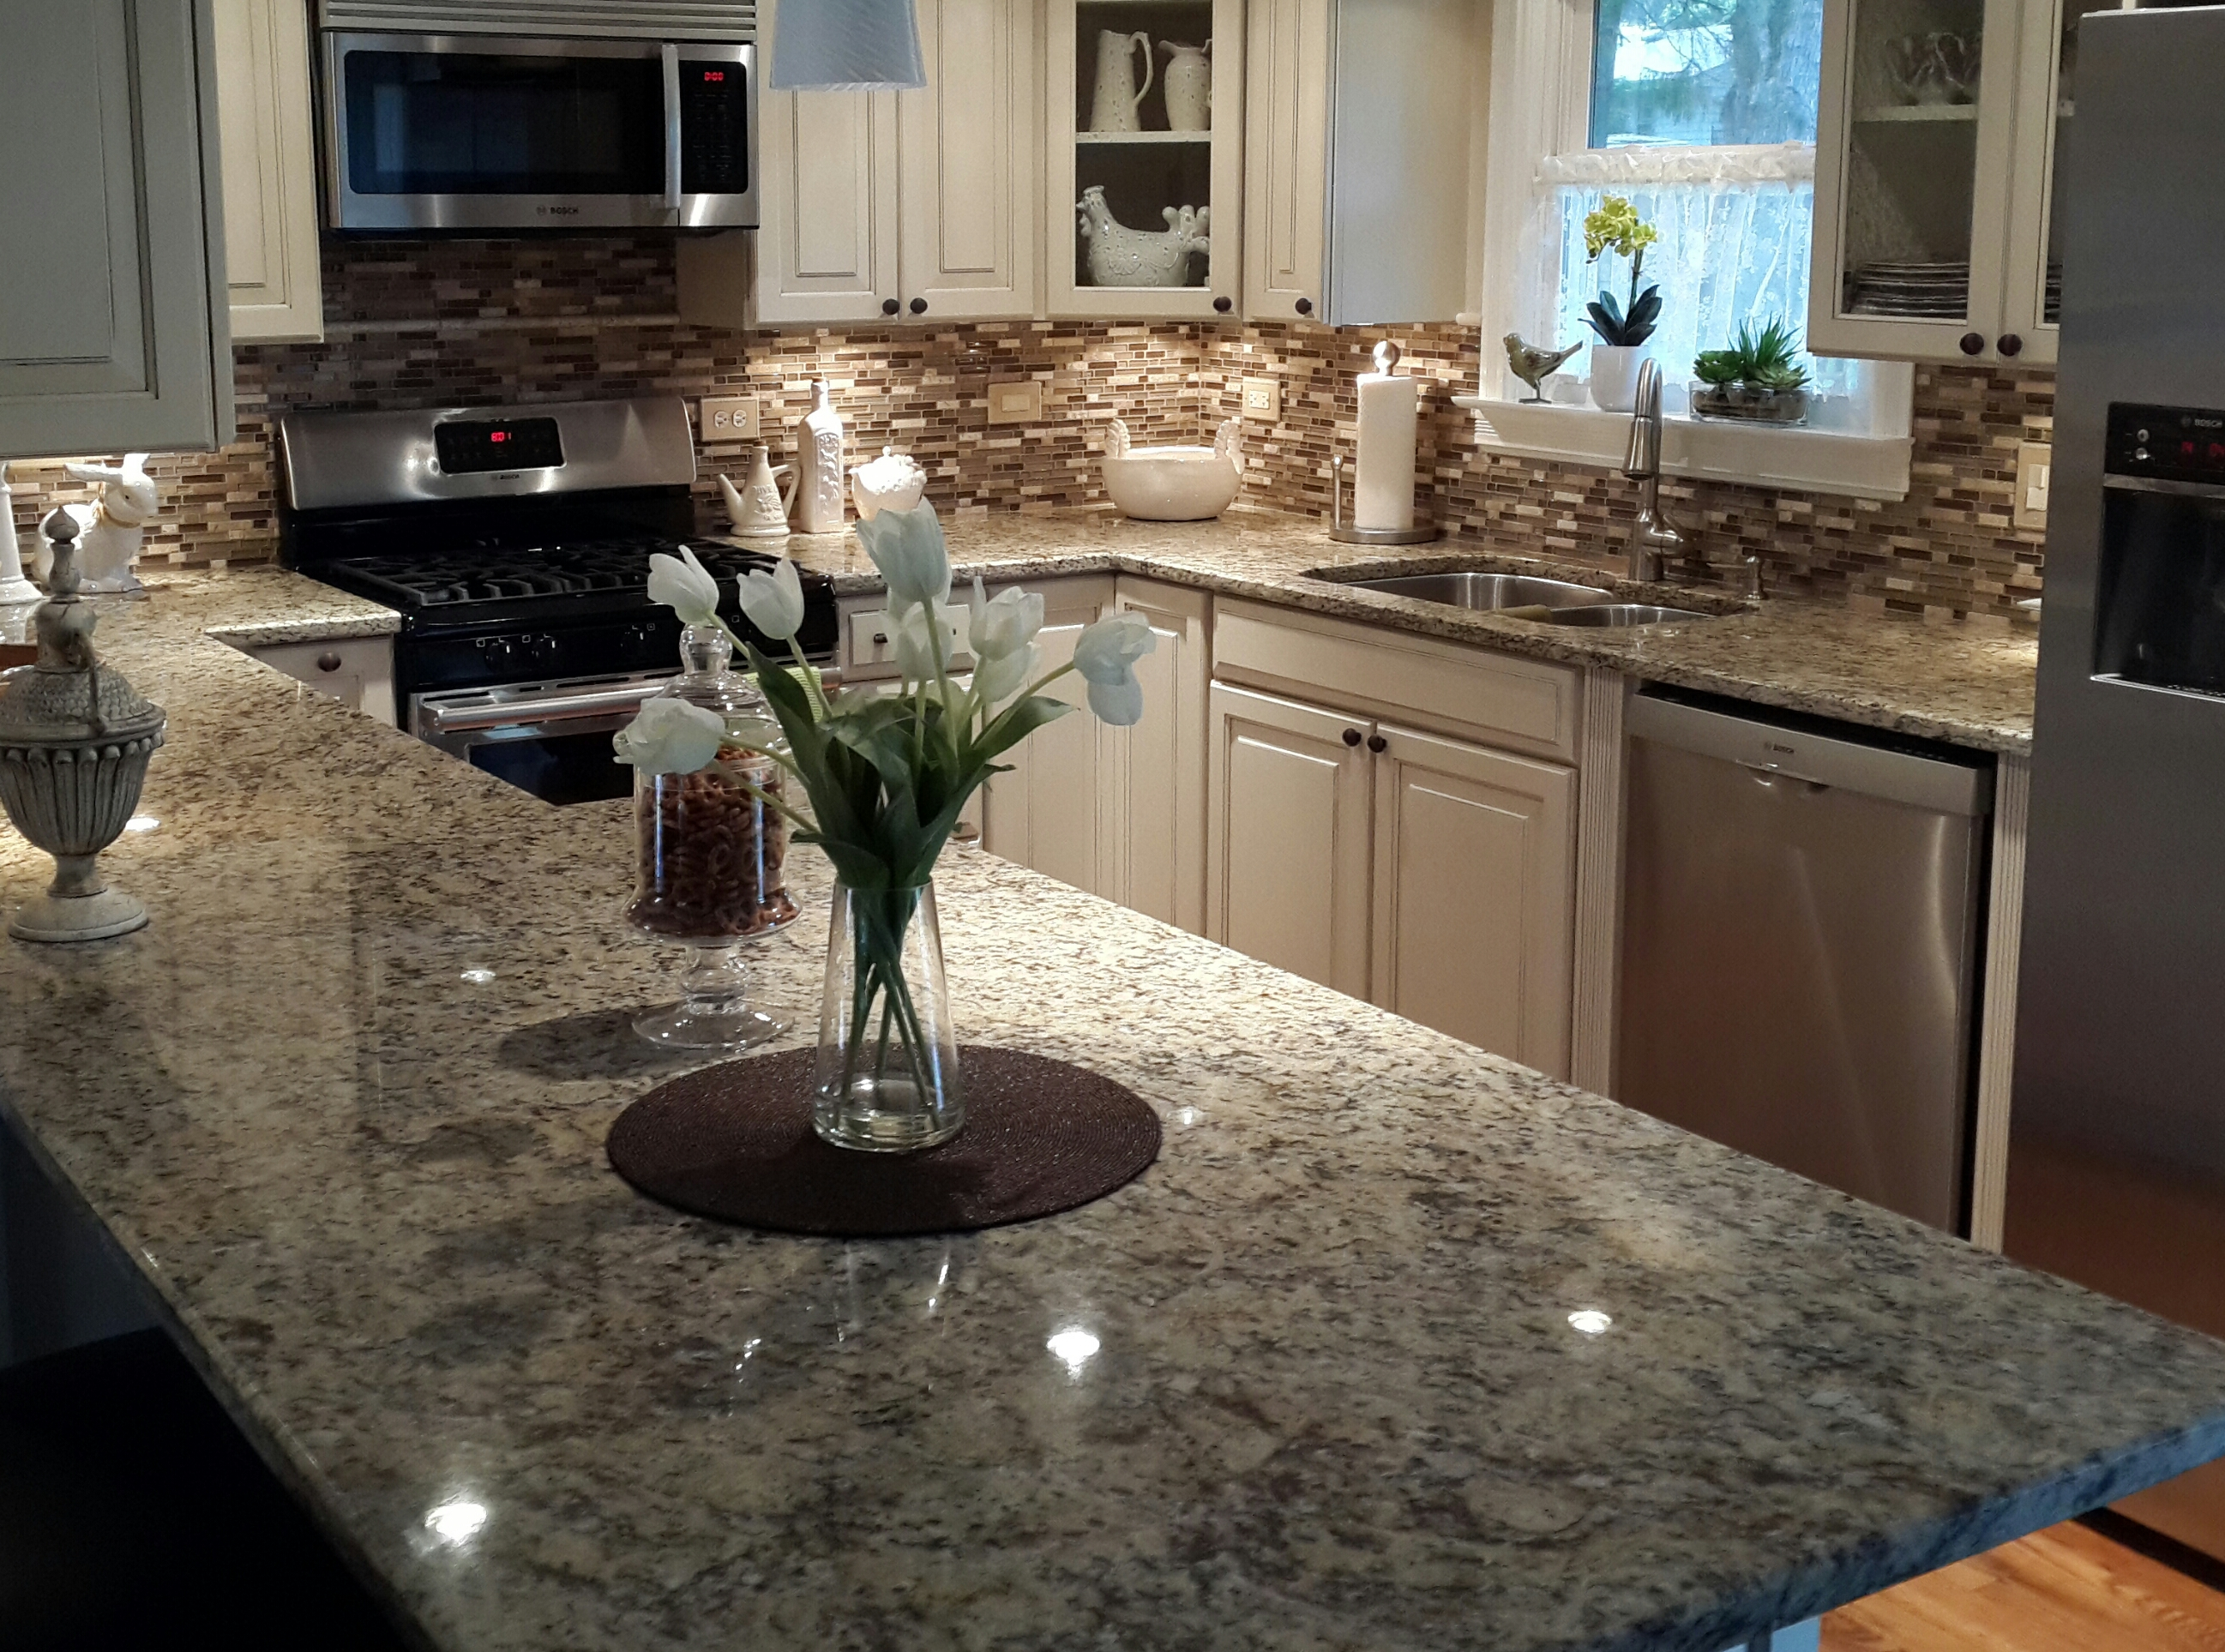 popular colours price tops kitchen installation foot quality of green granite square colors per the light cost white types yard installed img laminate countertops himalayan in countertop